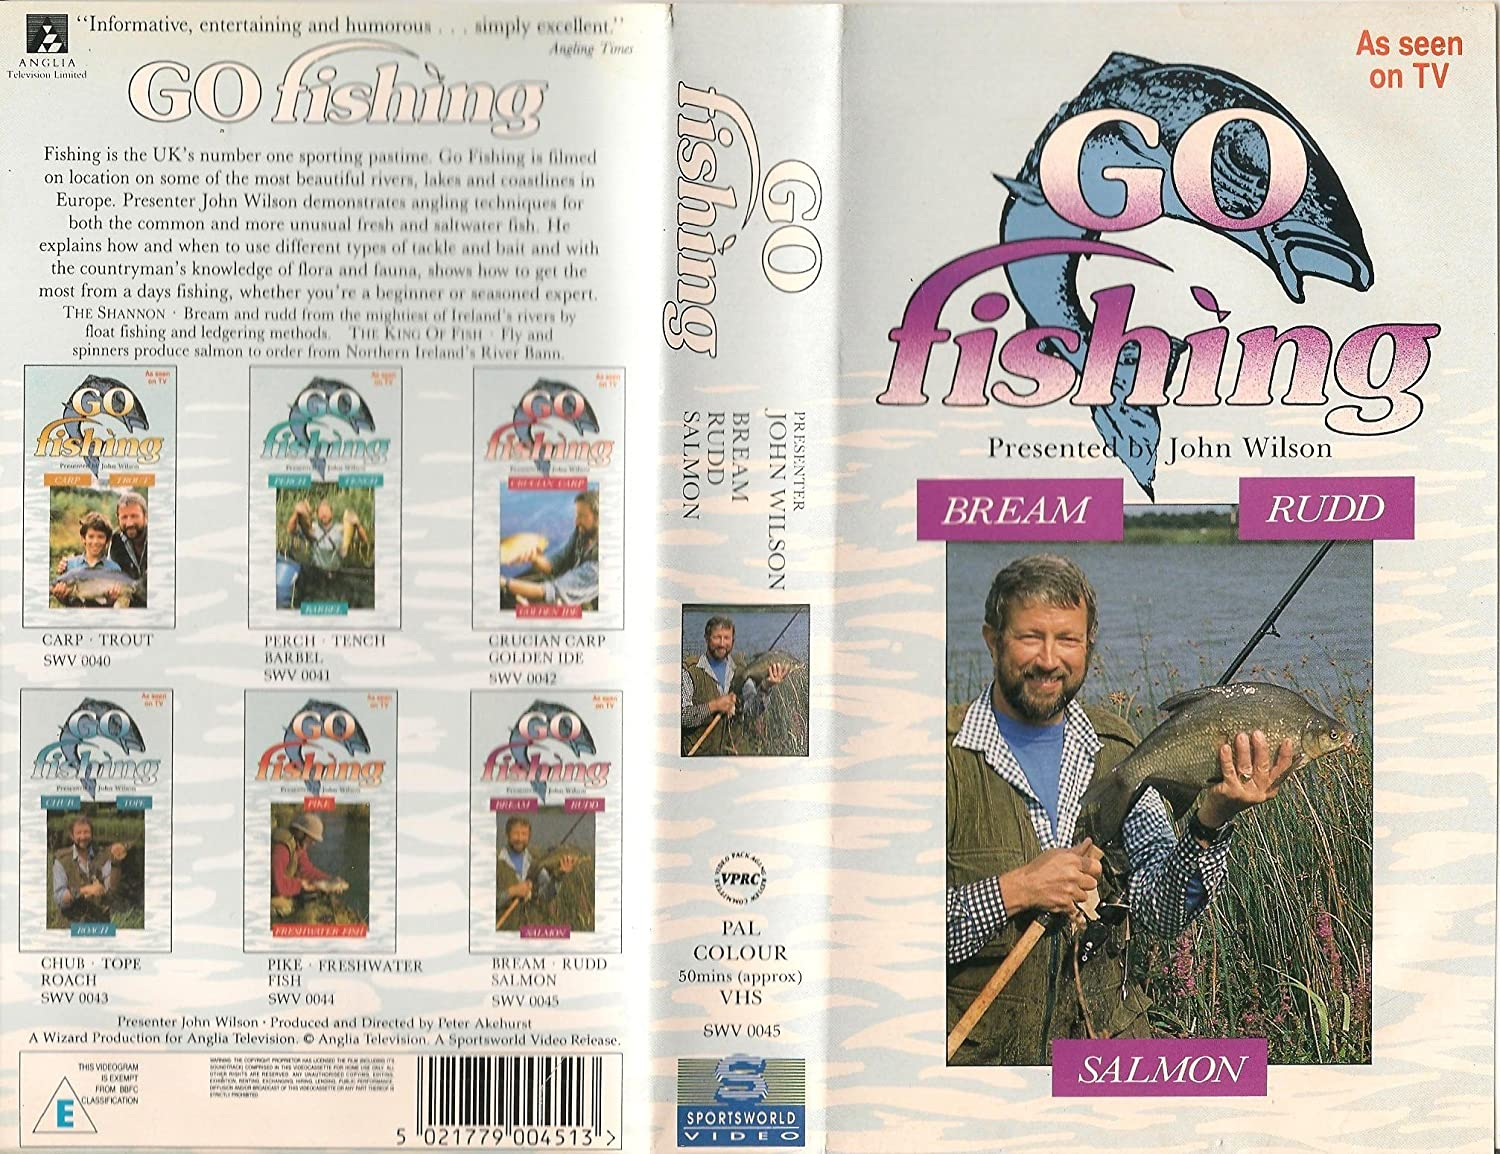 Go Fishing: Volume 12 - Bream, Rudd, Salmon [VHS]: Presenter